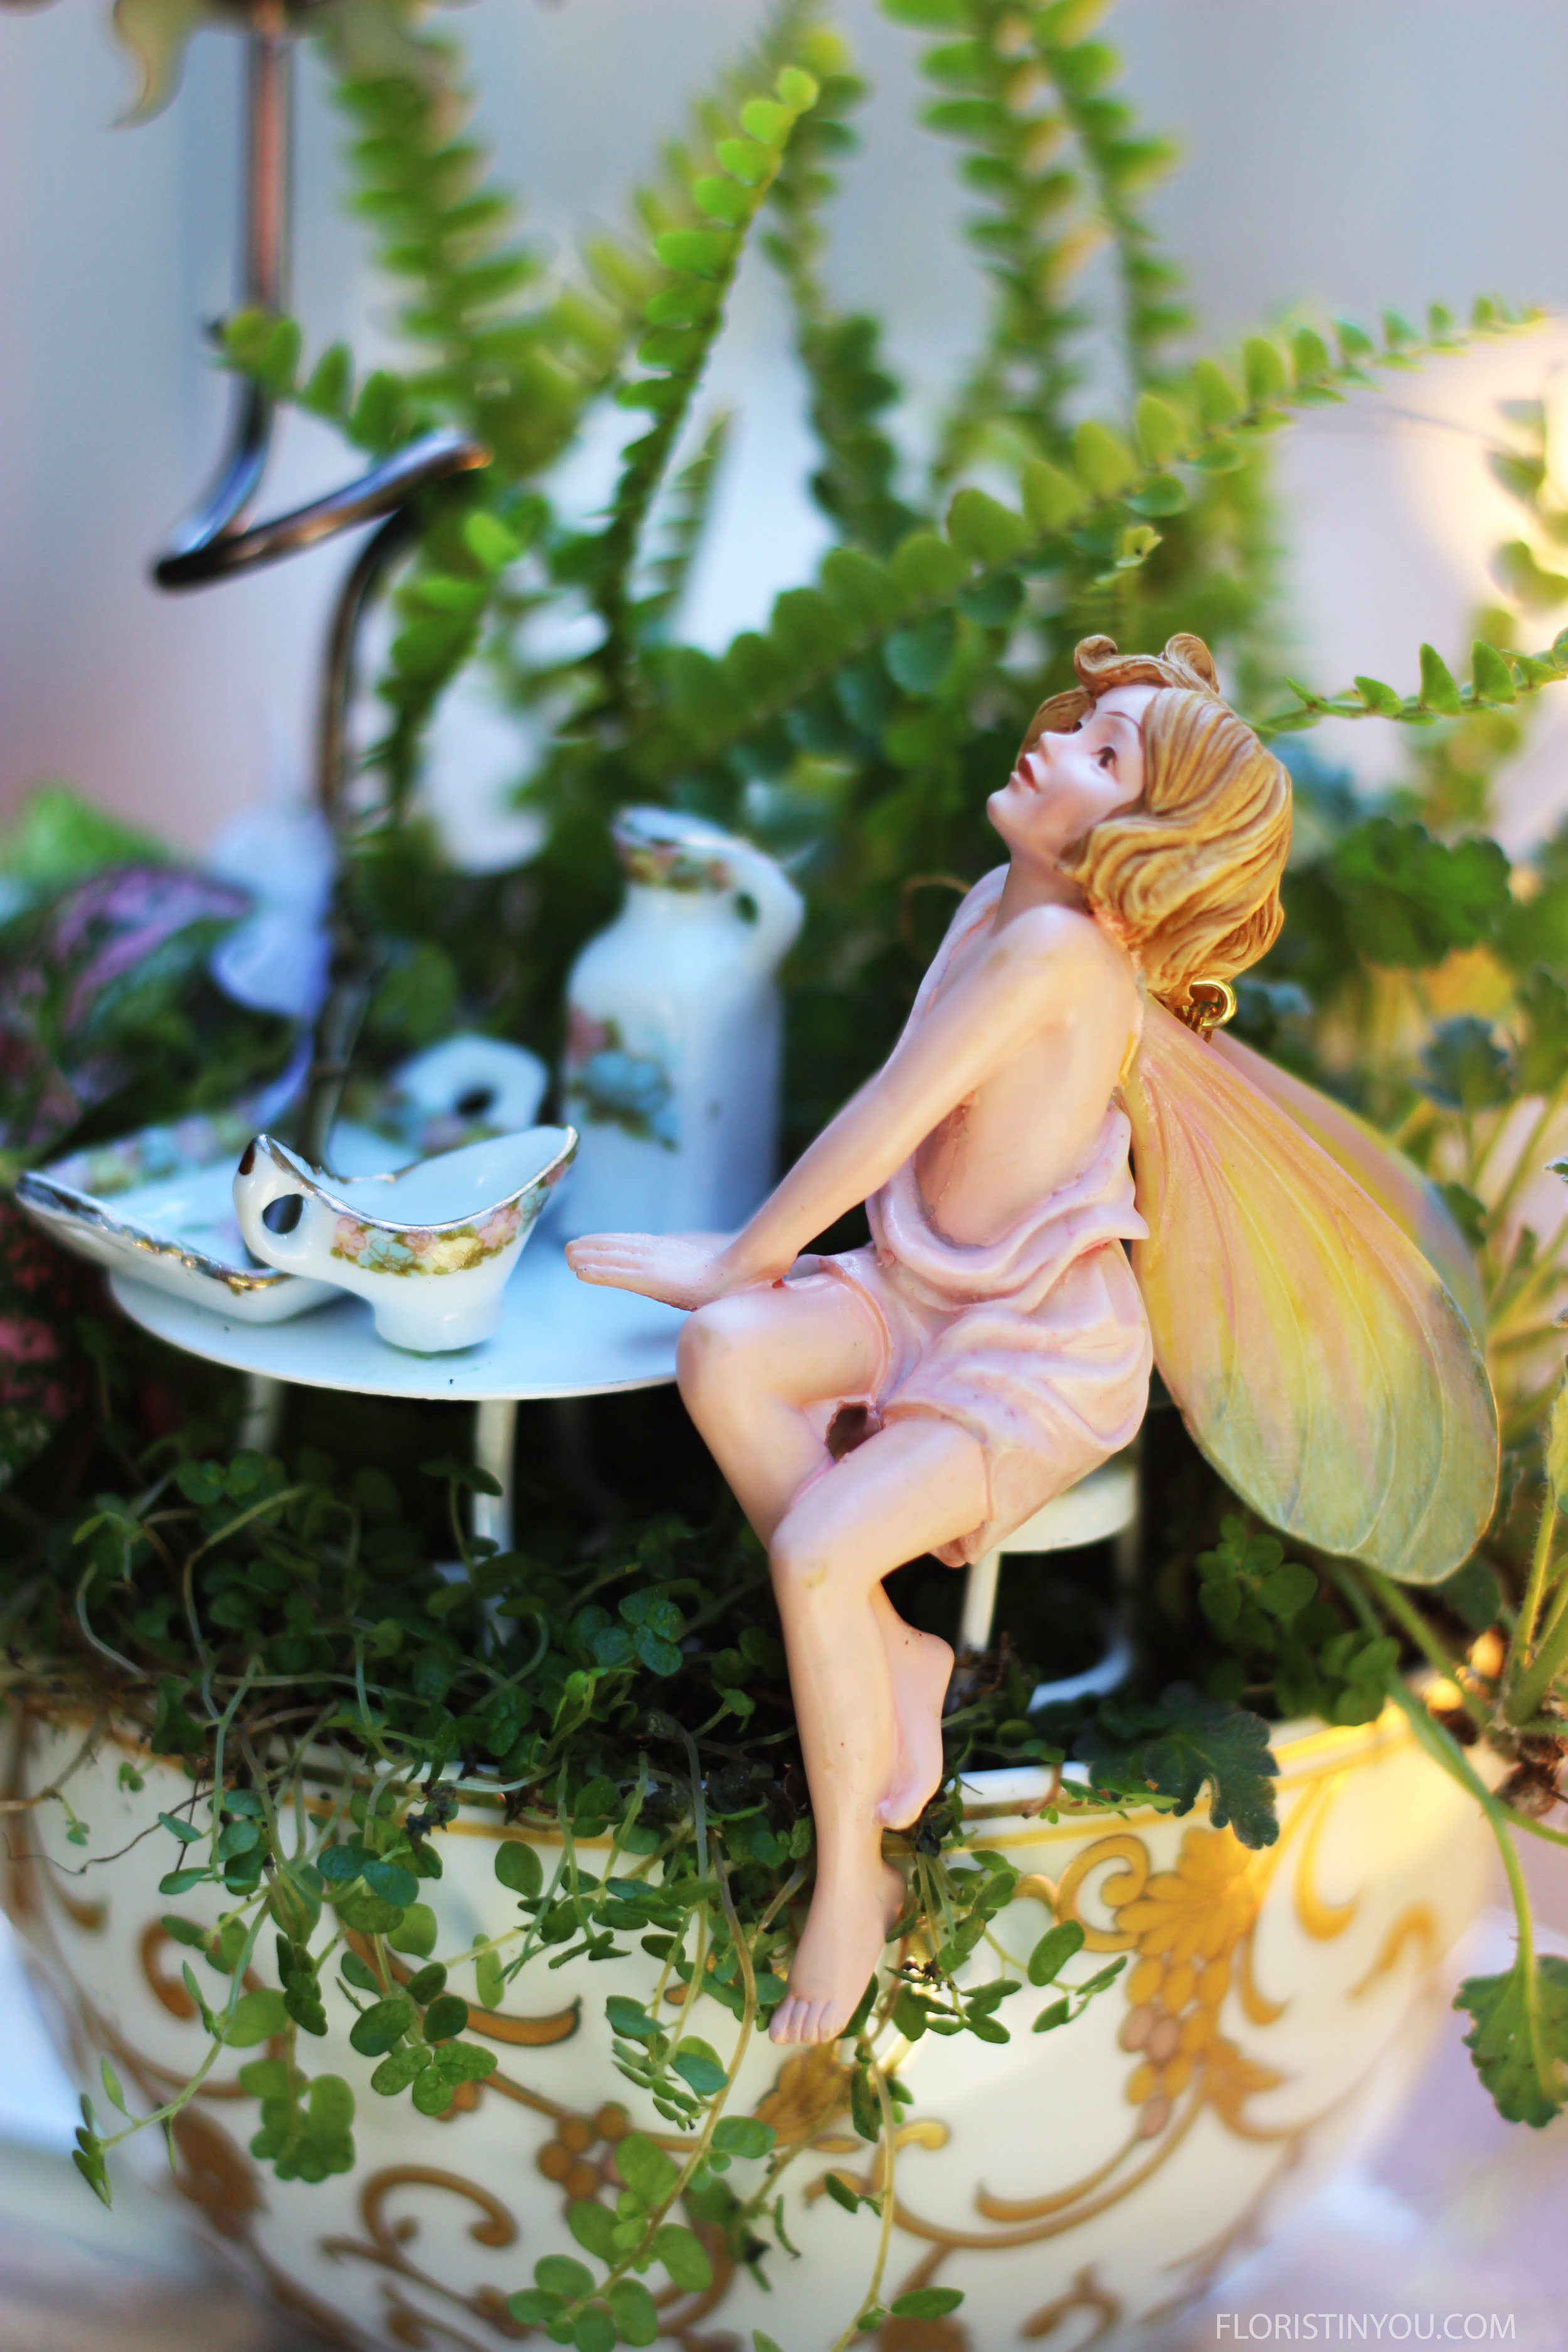 How the iphone Killed the Flower Fairies